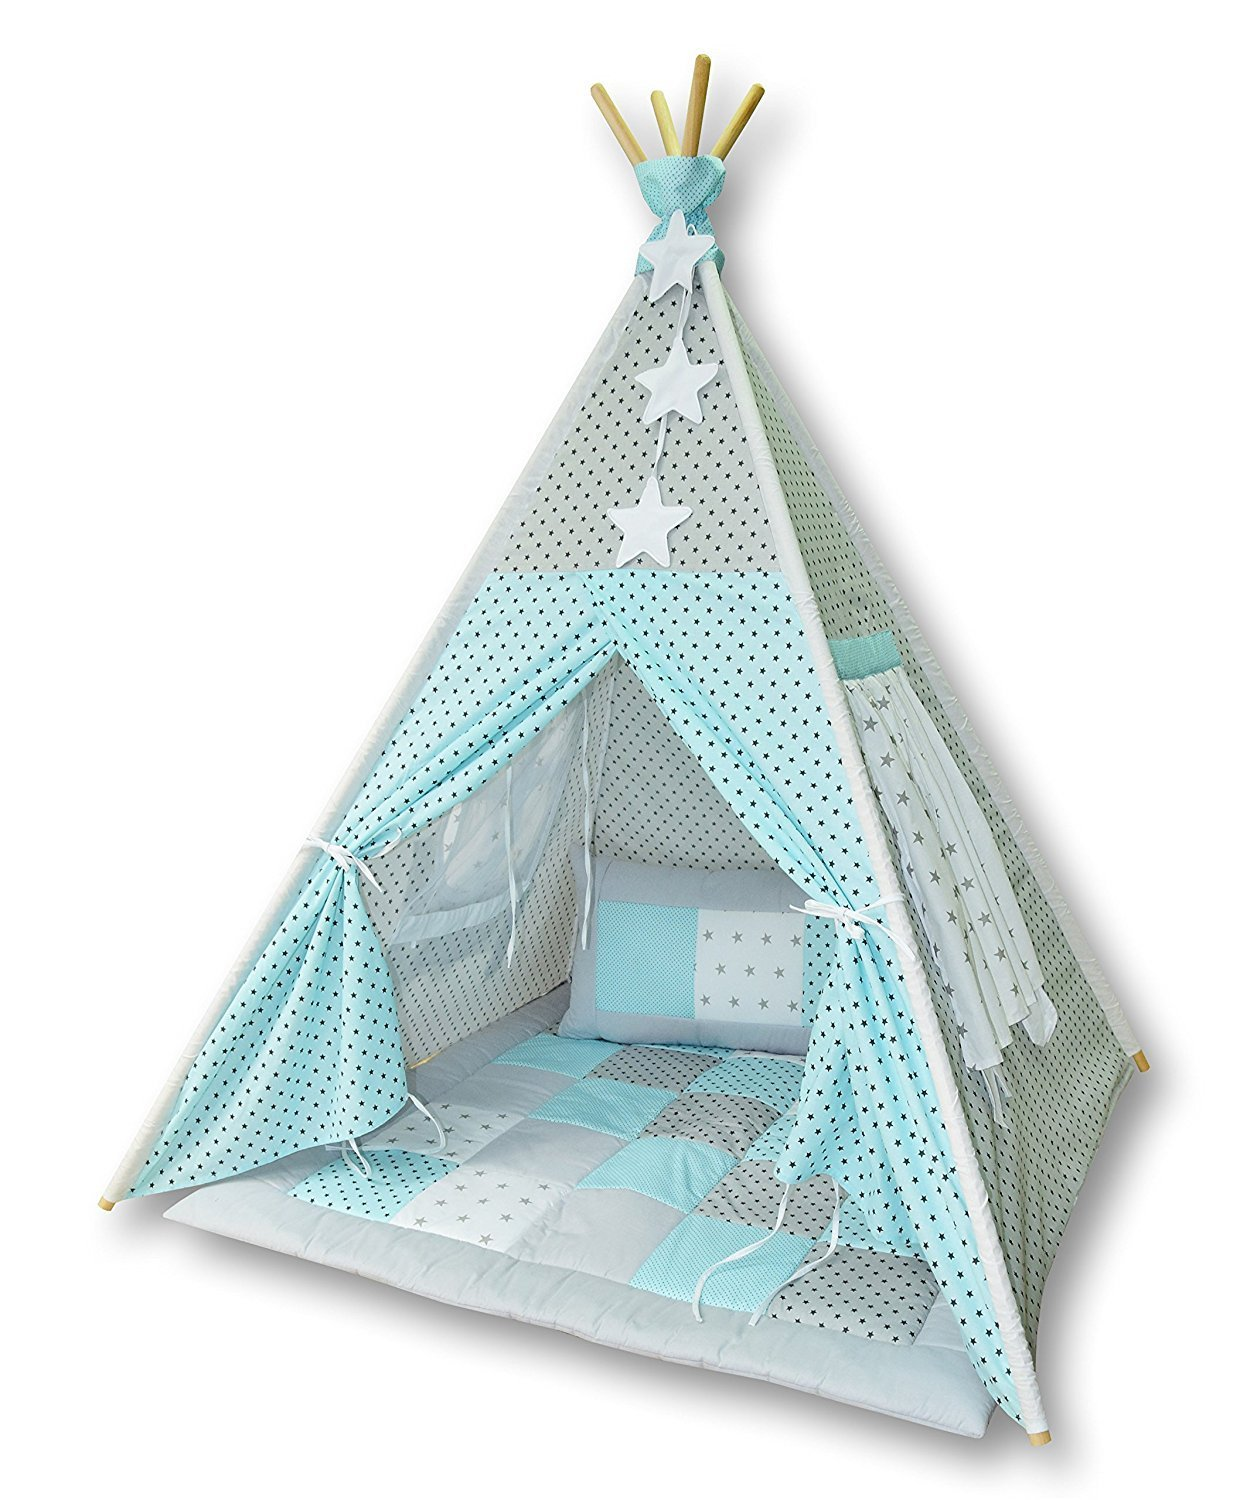 tipi spielzelt zelt f r kinder t08 spielzelt mit. Black Bedroom Furniture Sets. Home Design Ideas